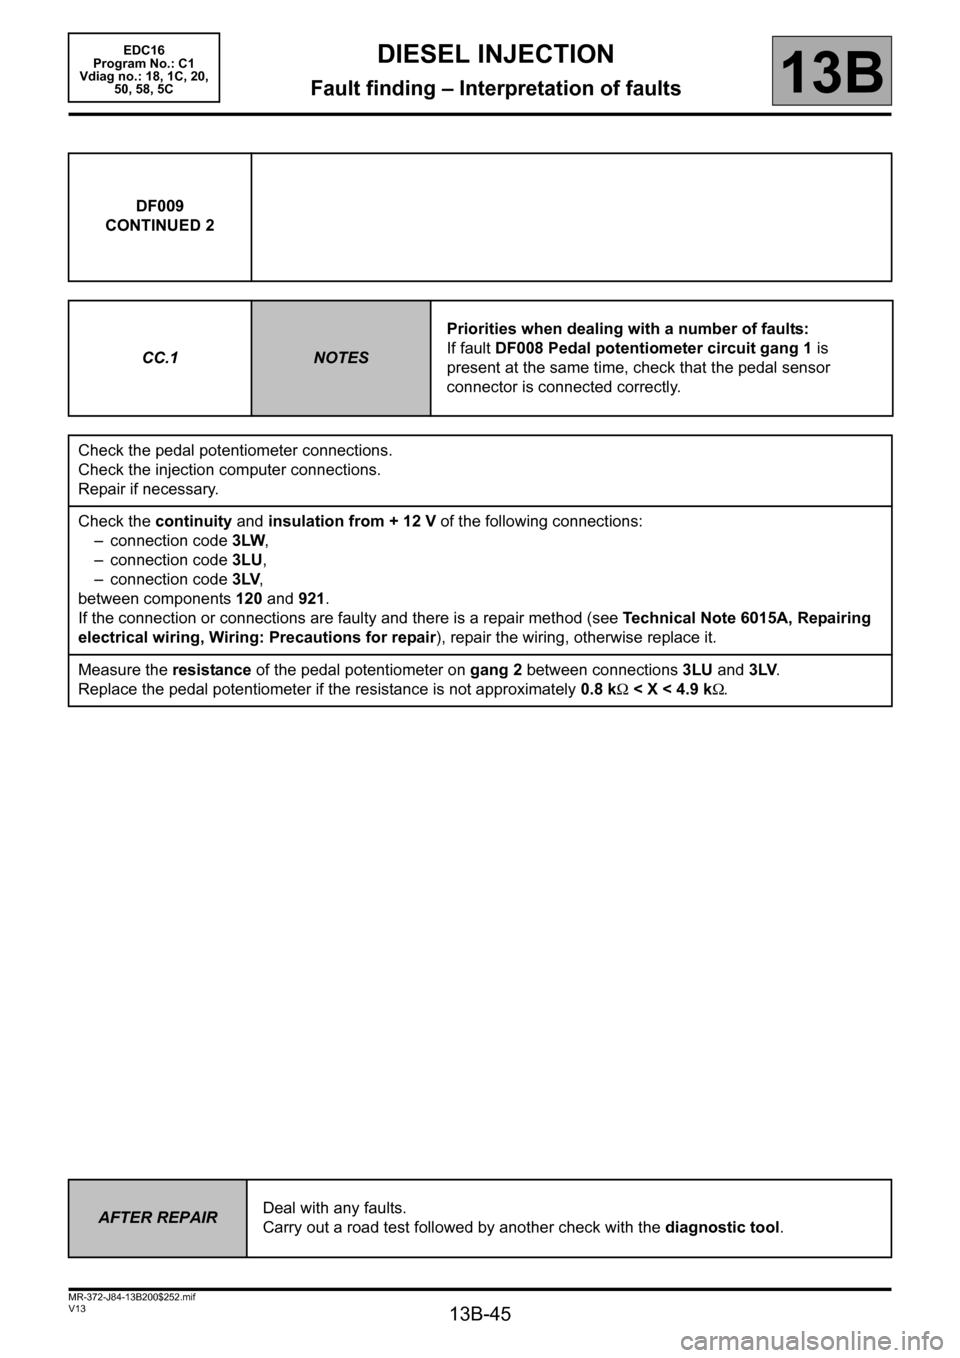 RENAULT SCENIC 2011 J95 / 3.G Engine And Peripherals EDC16 Workshop Manual, Page 45